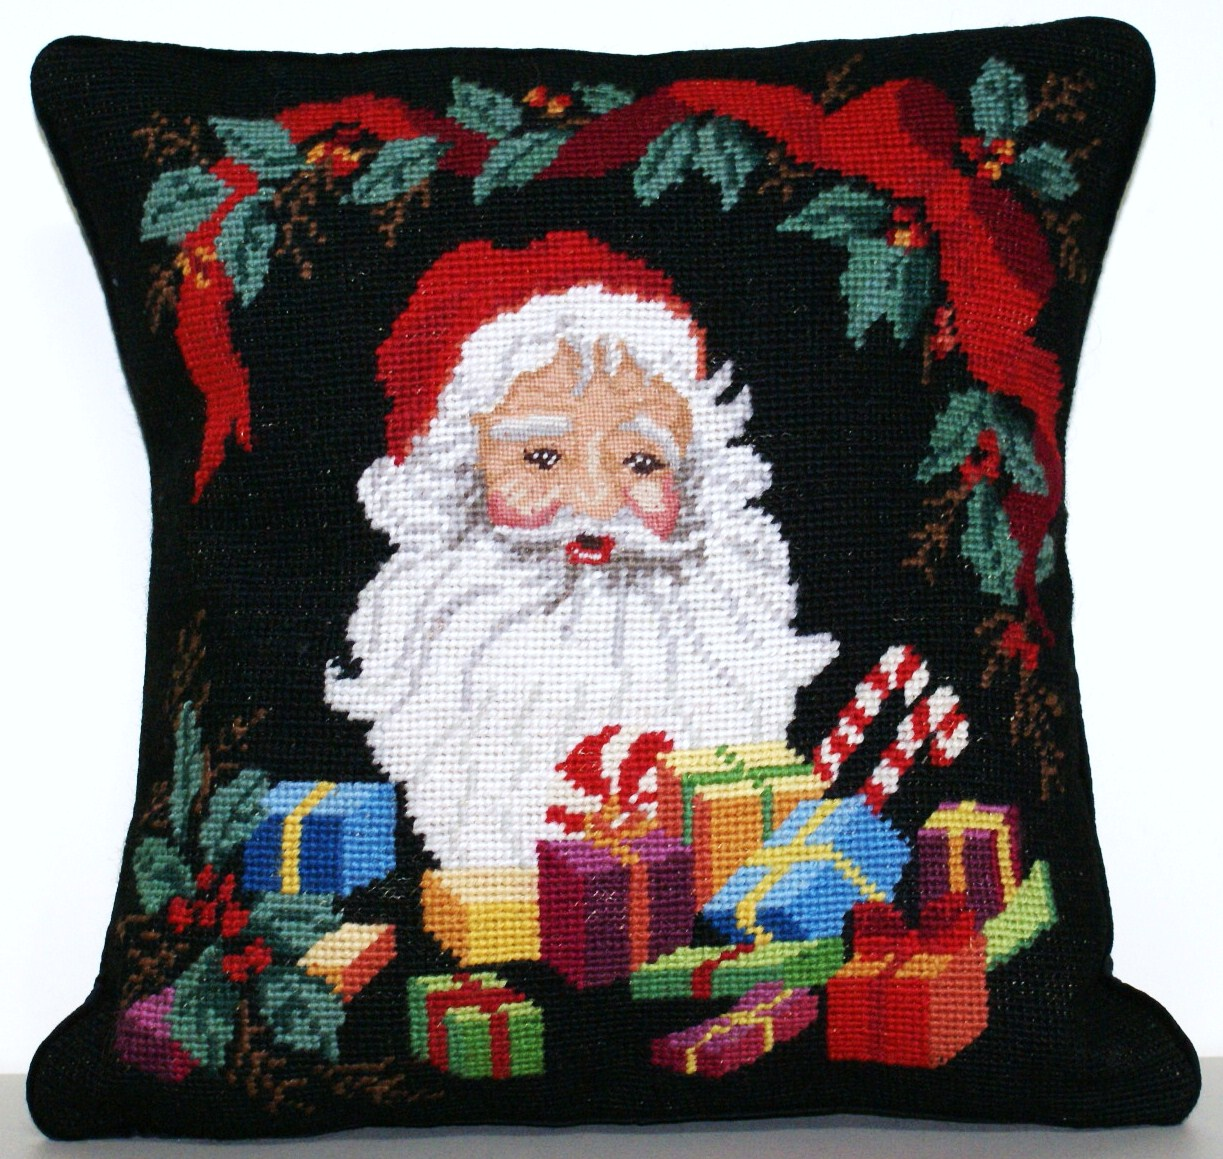 14″x14″ Needlepoint Santa Claus Pillow Cover 12980912